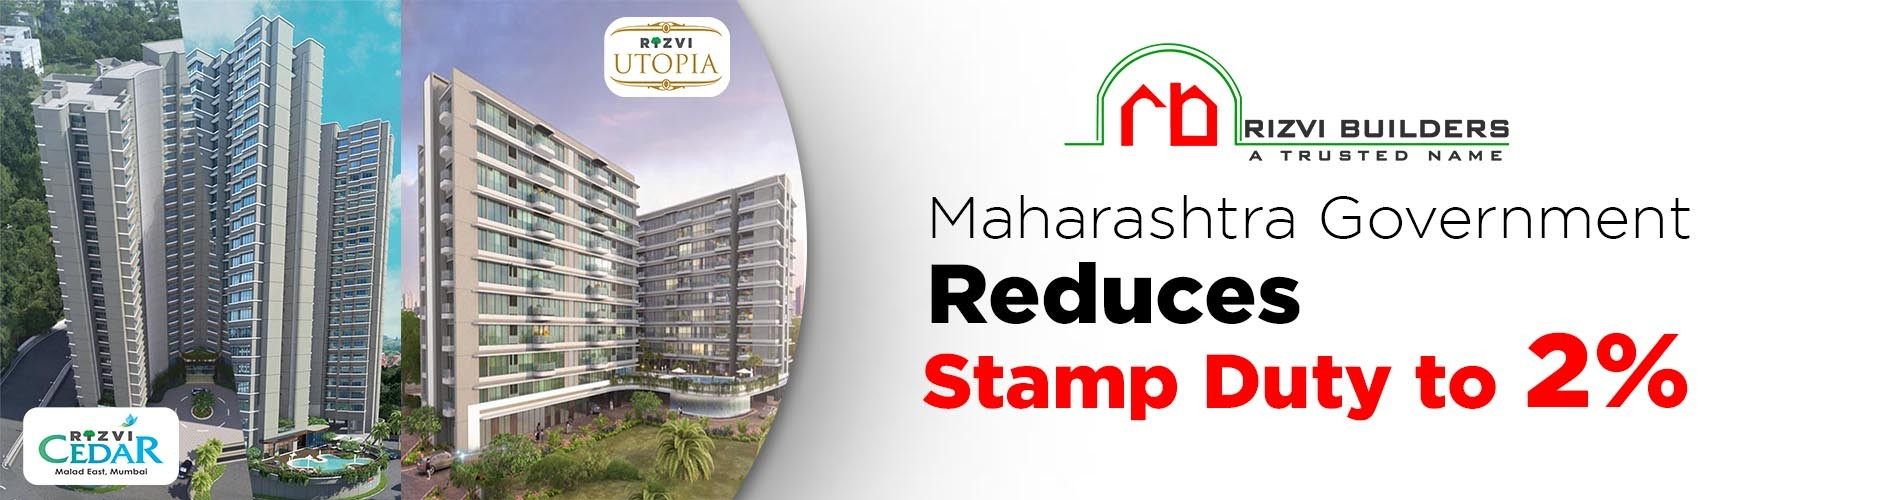 Maharashtra Government reduced Stamp Duty